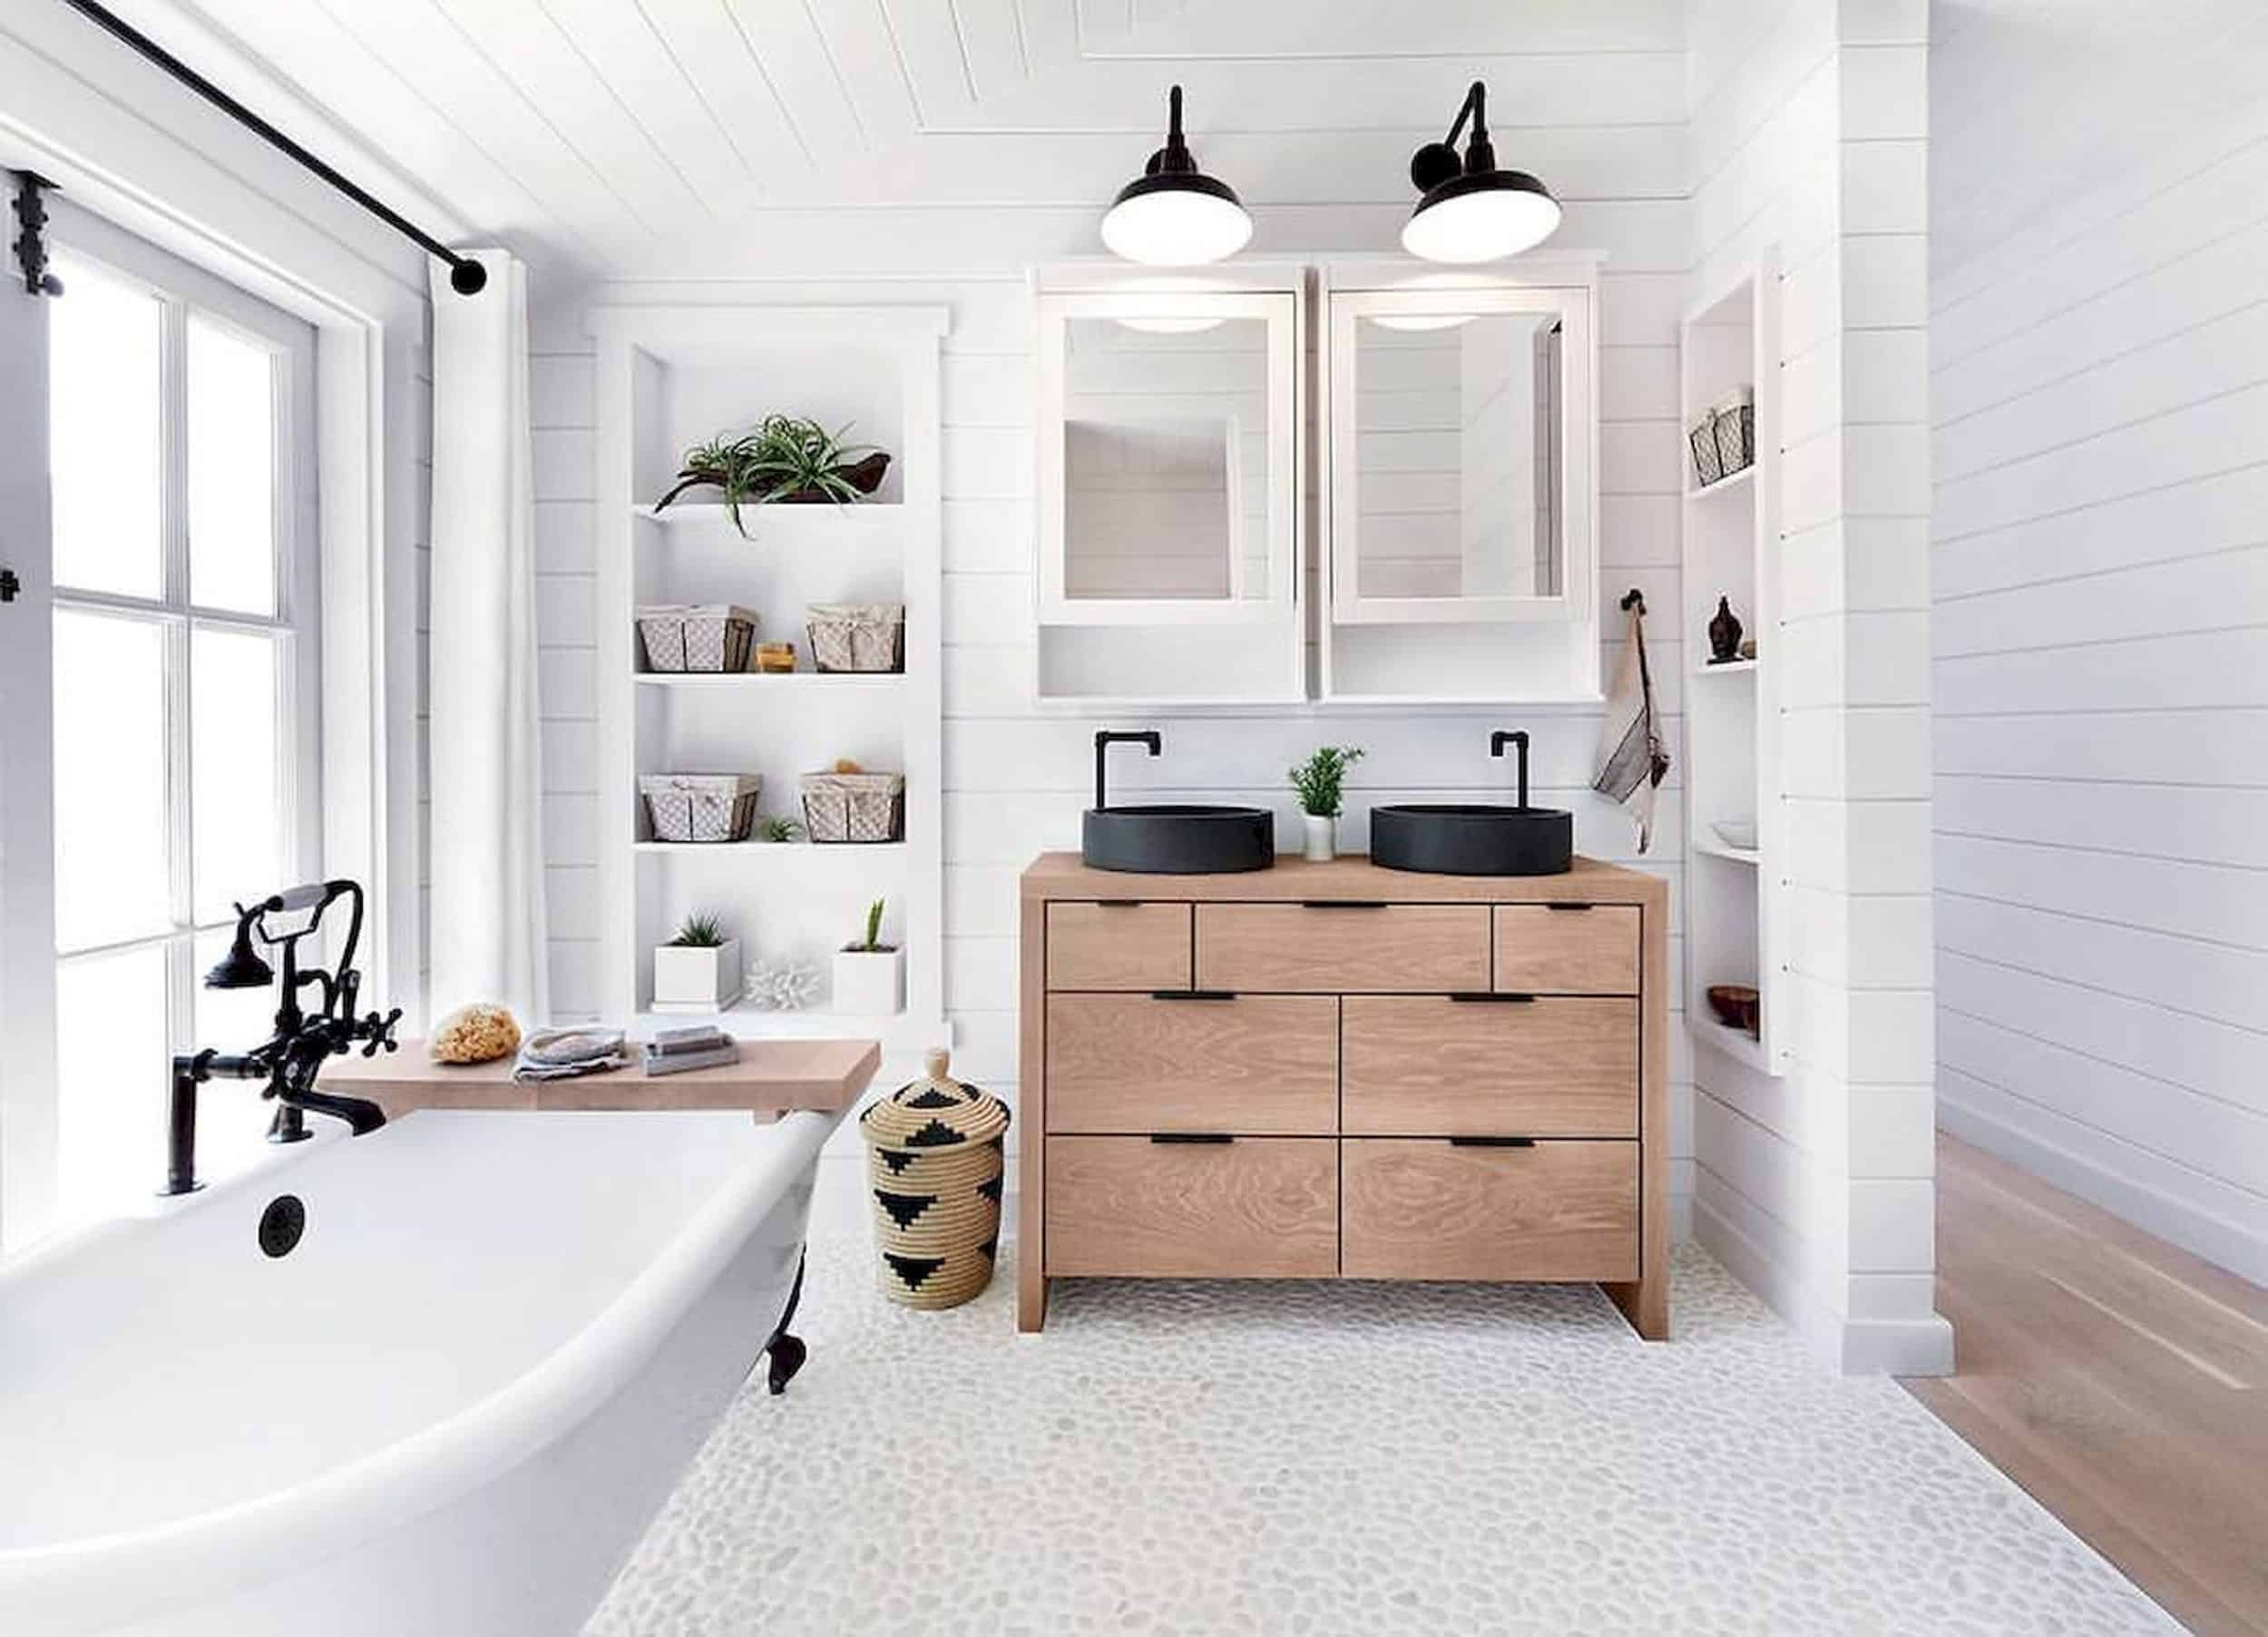 Modern Farmhouse Bathroom Pebble Floors